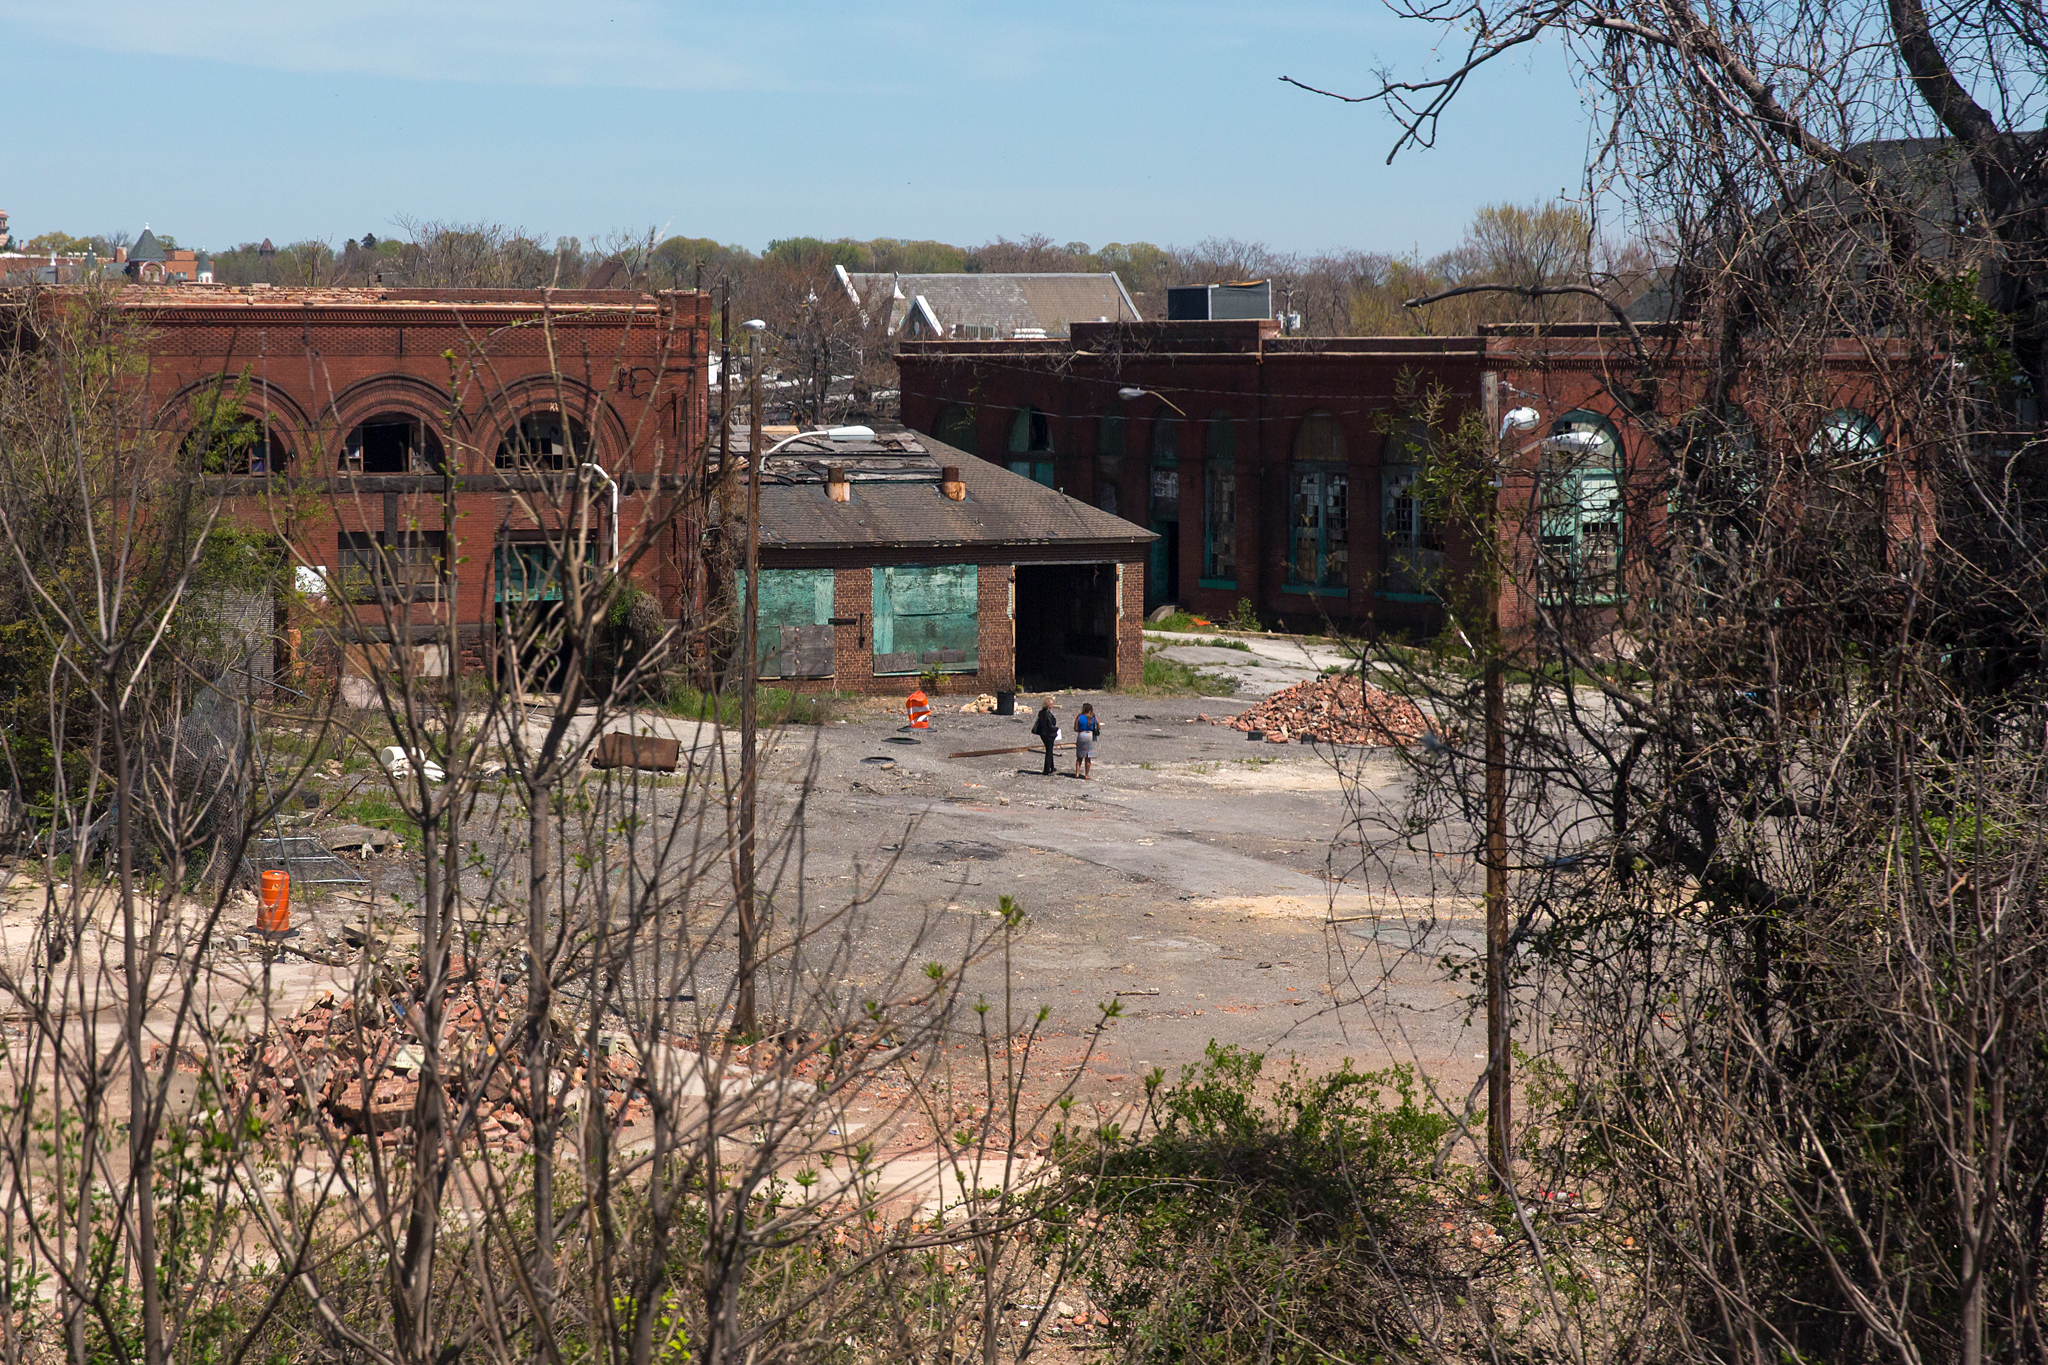 Imagine What We Could Do With This Place - Baltimore, MD 4.18.2016 - WAS-NYP